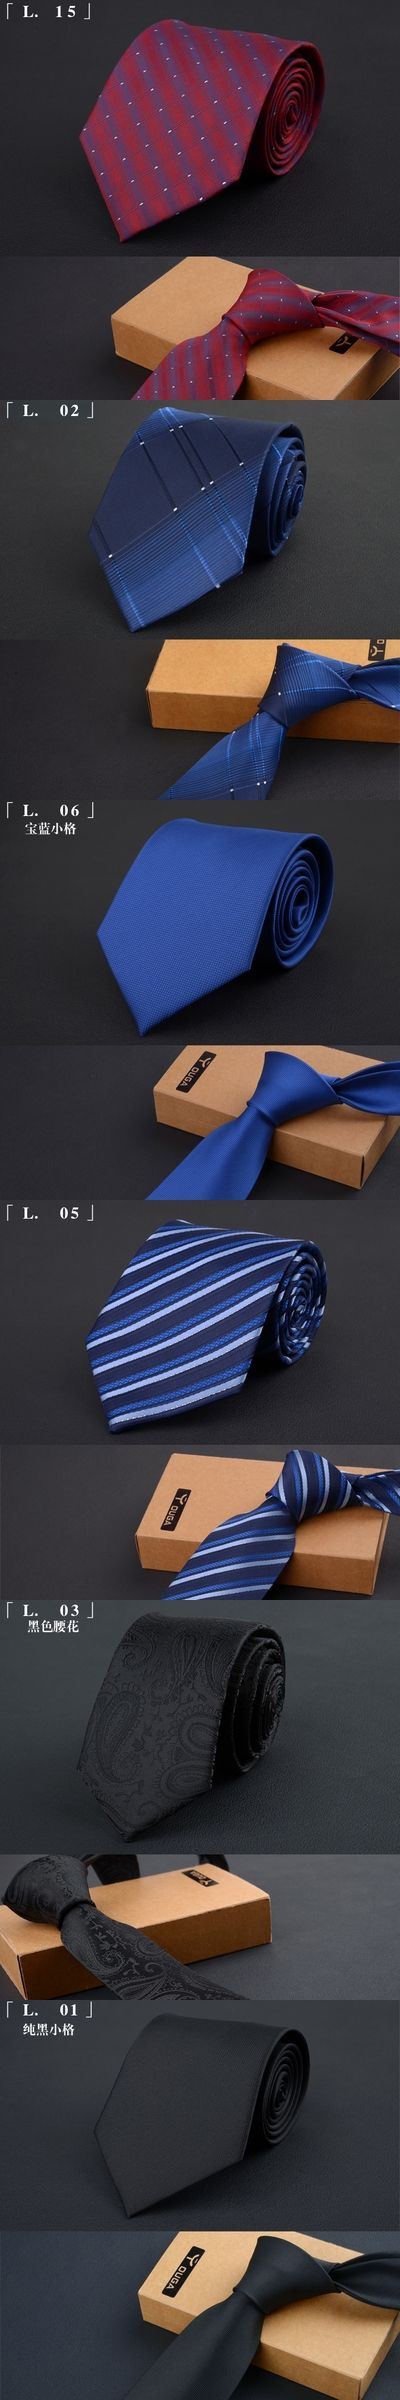 new menus business dress tie wedding groom tie cm printing men